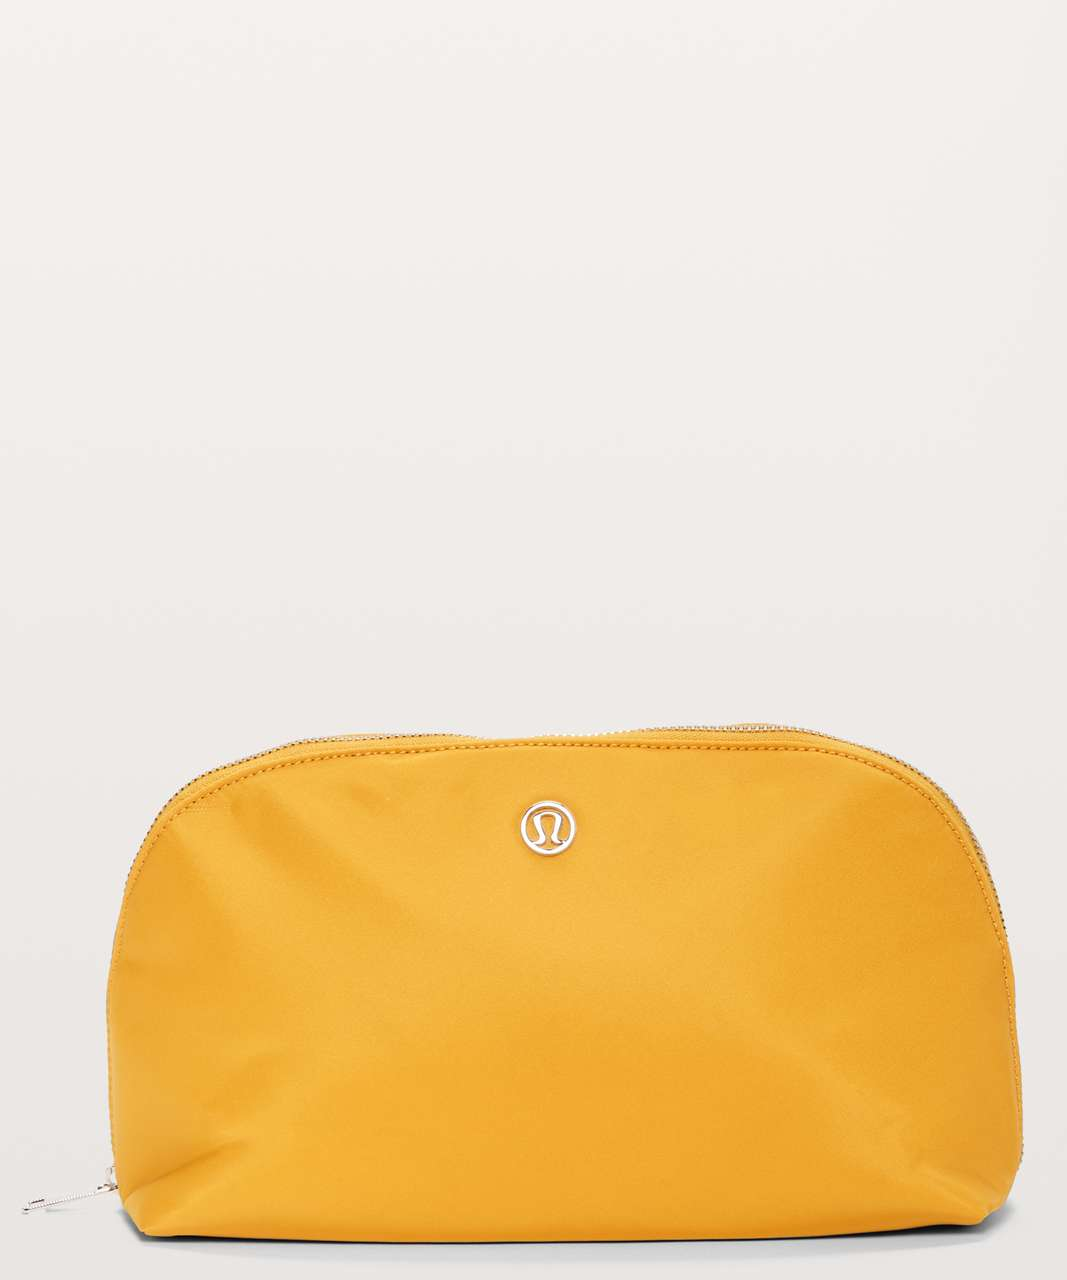 985413c864 Lululemon Sun Up Sun Down Pouch *2.5L - Honey Lemon - lulu fanatics